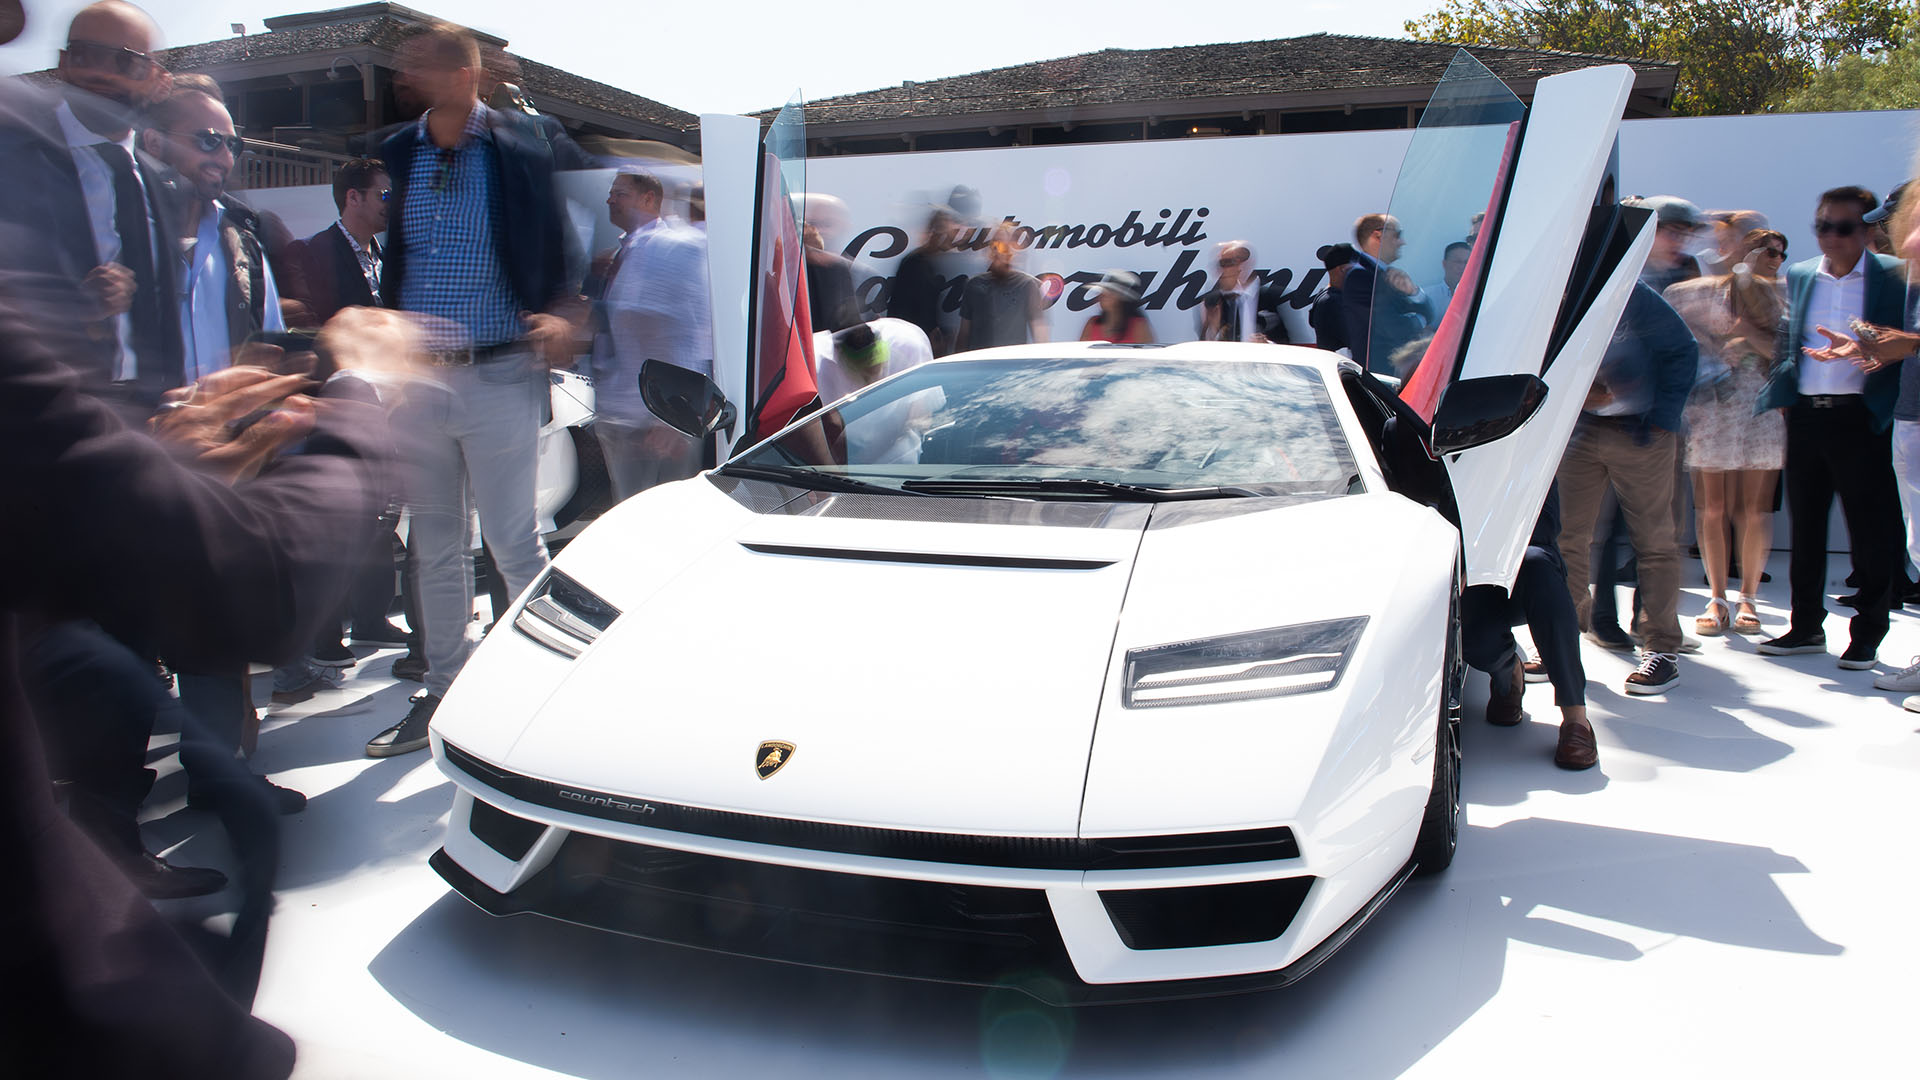 The unveiling of the Lamborghini Countach at Monterey Car Week